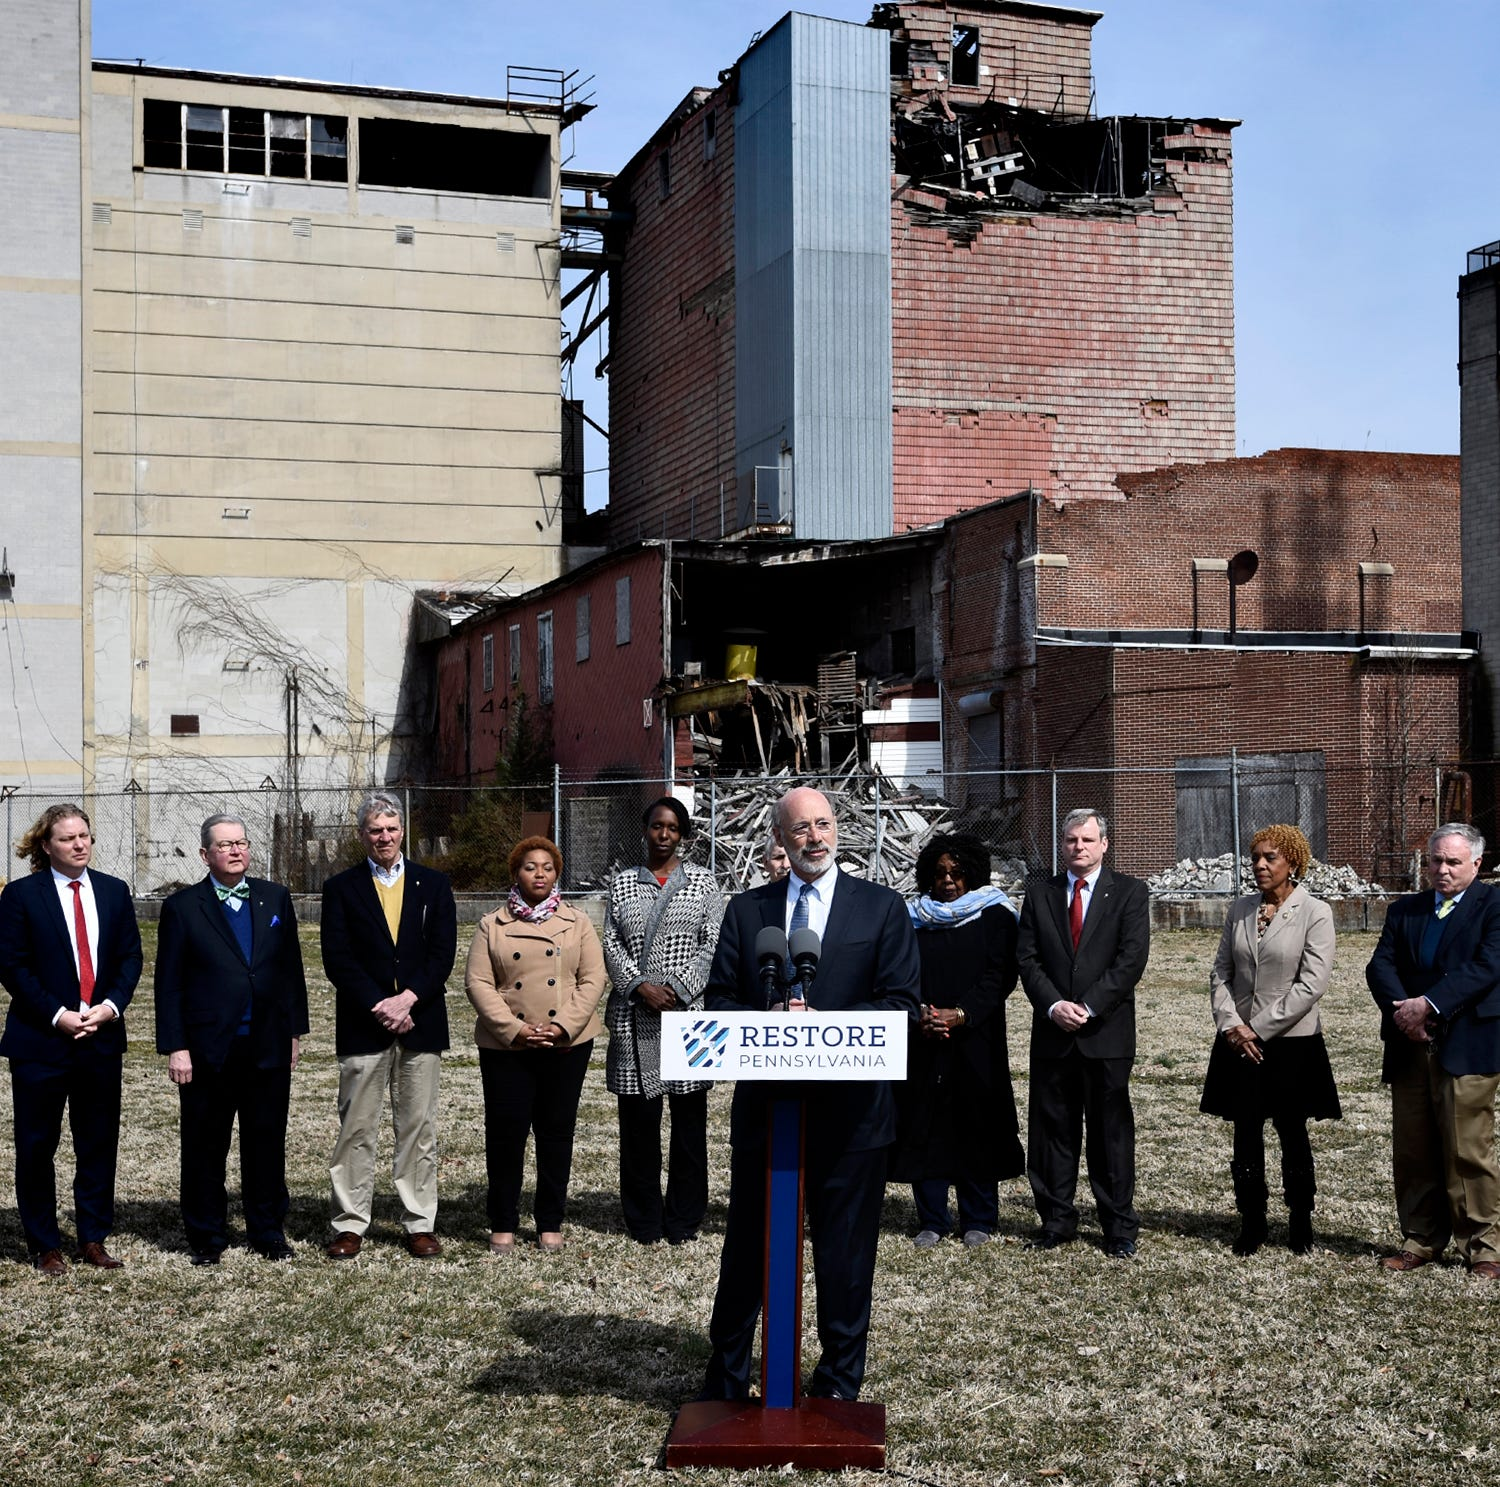 LETTER: Yes, Wolf's Restore Pennsylvania plan is too good to be true